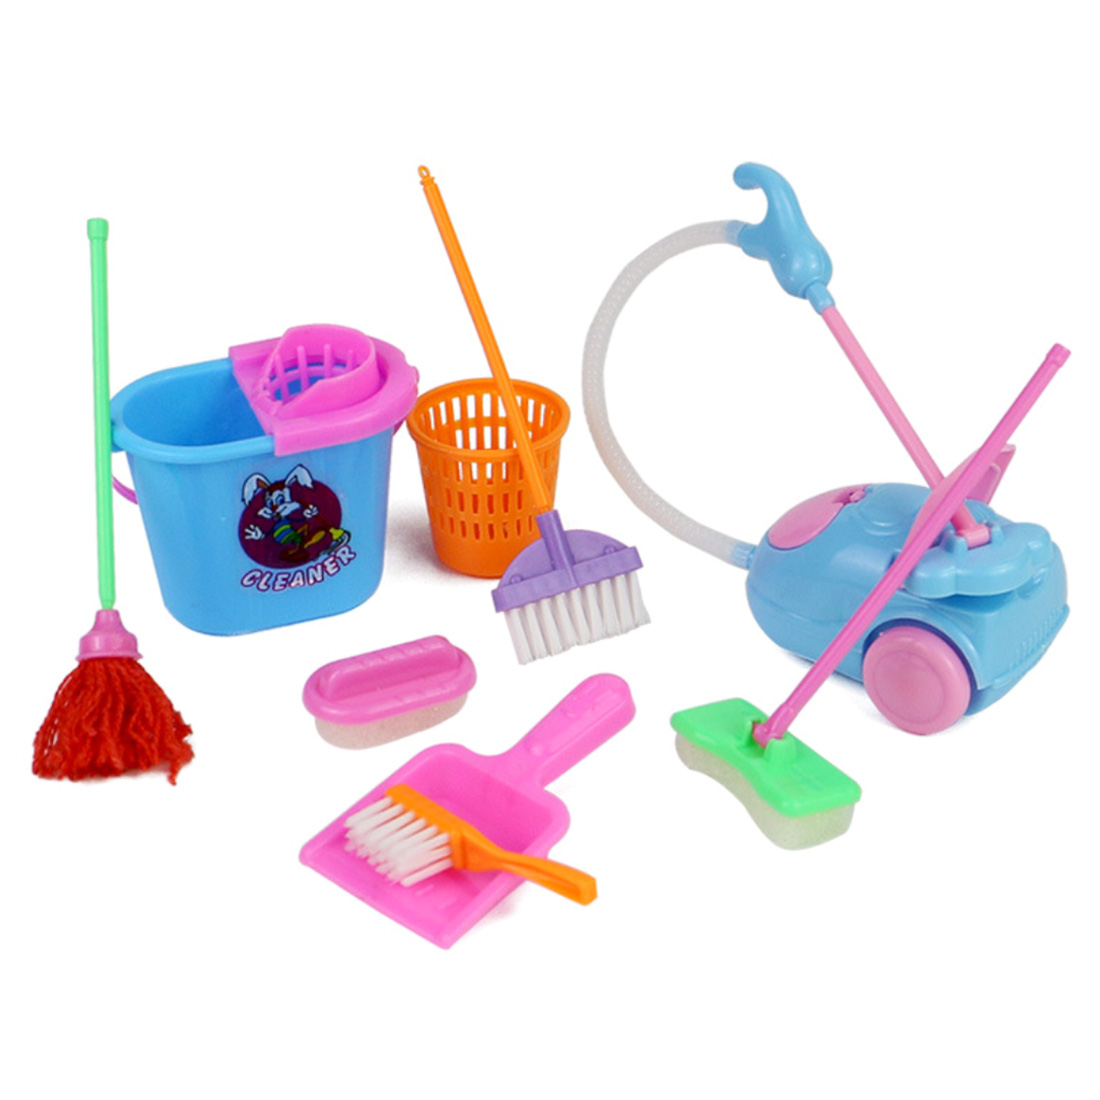 Hot 9Pcs Children Pretend Play Toy Kids Dolls Furniture Cleaning Playset Home Furnishing Funny Vacuum Cleaner Mop Broom Tools